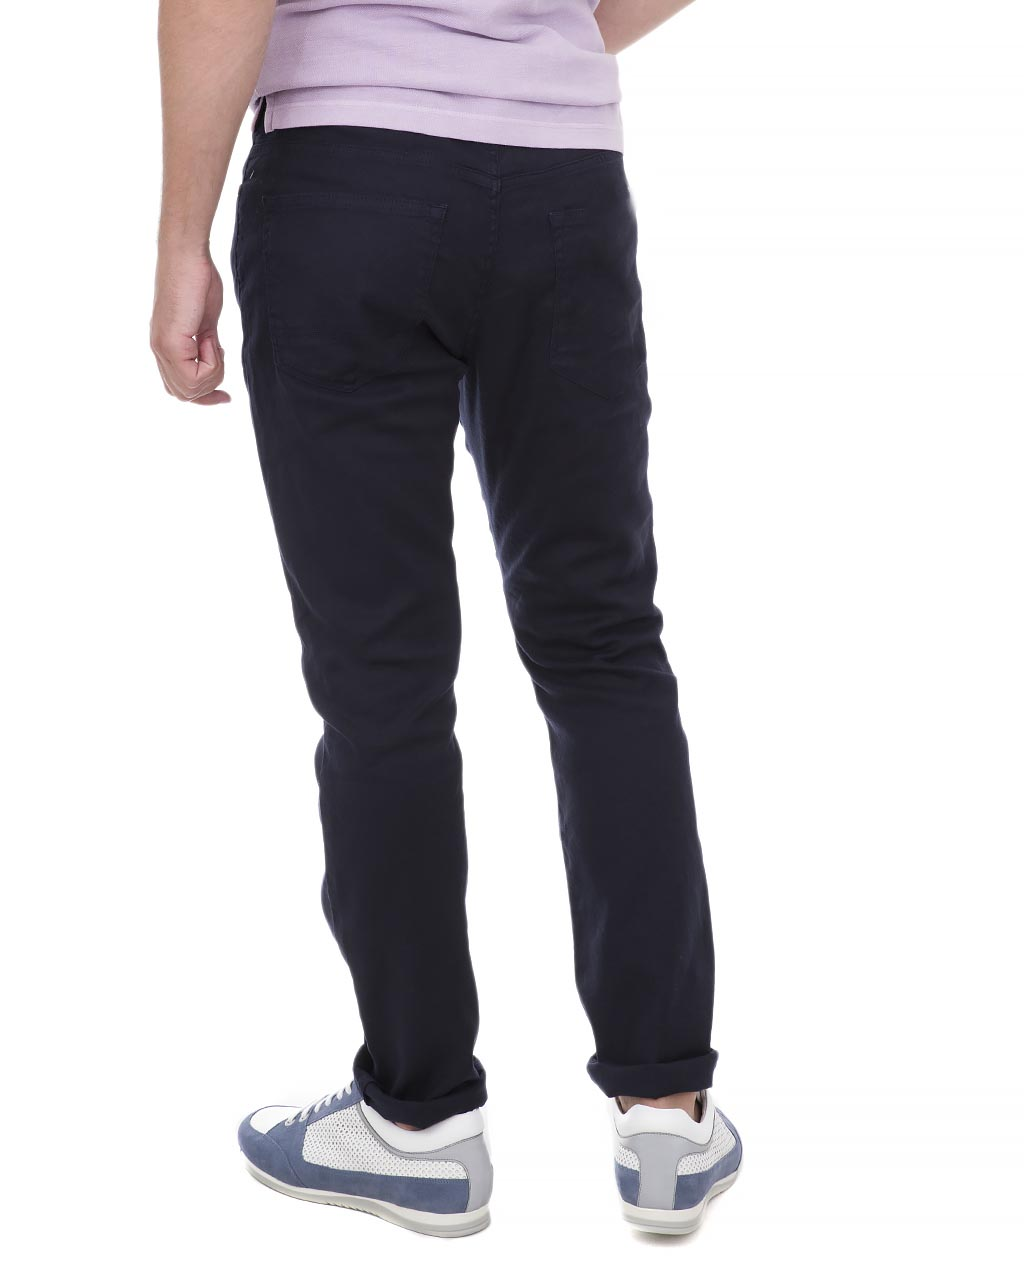 Men's trousers 1842-3225-464/91 (3)